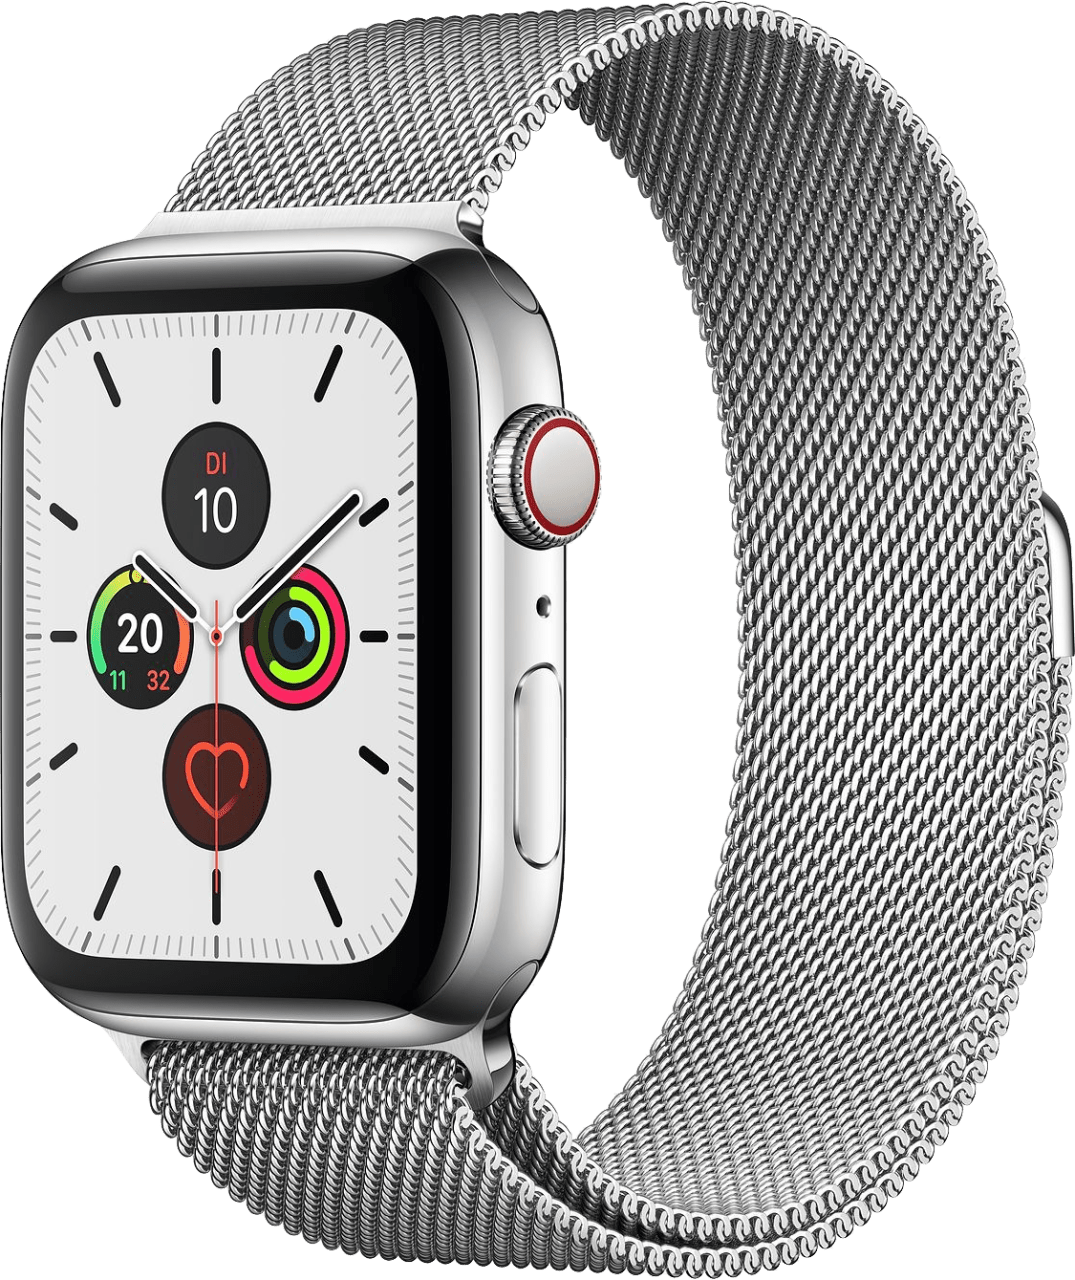 Silber Apple Watch Series 5 GPS + Cellular, 44mm.2